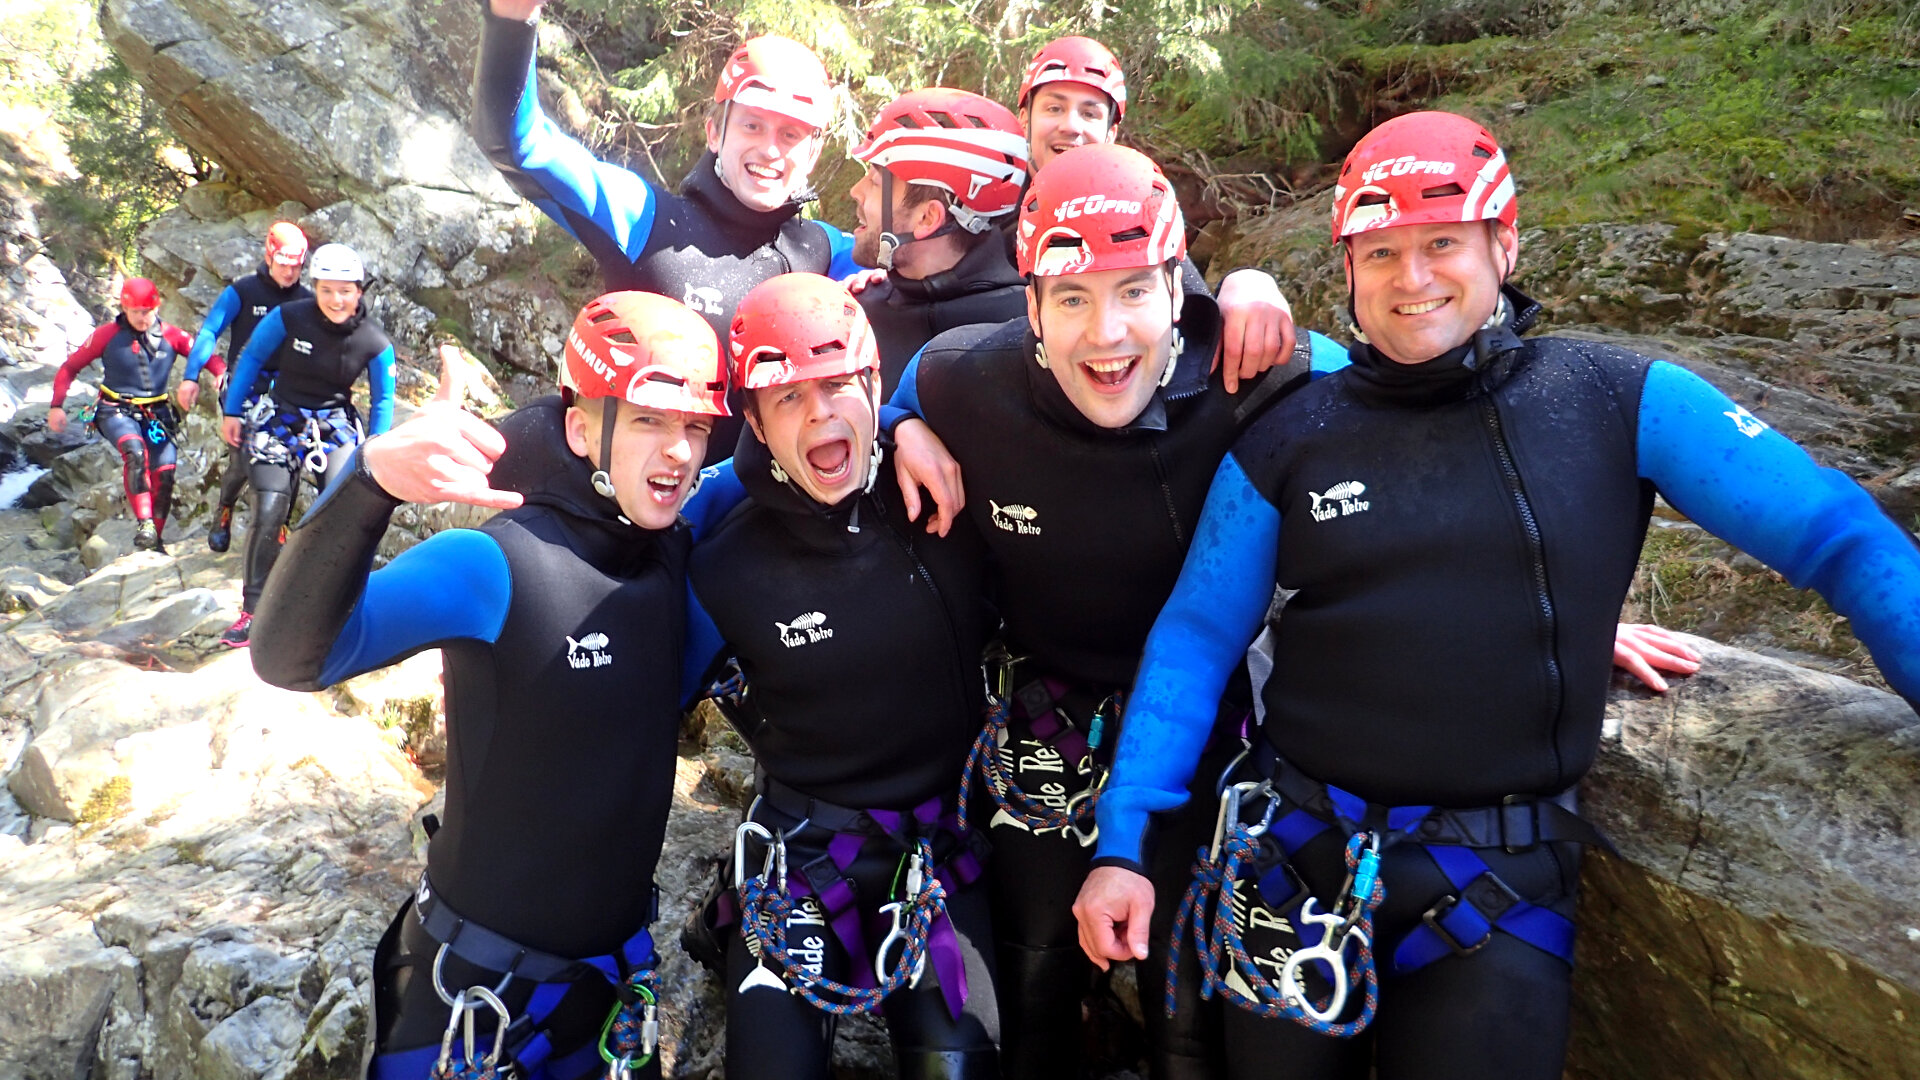 Group of Men on Stag party at base of Gorge